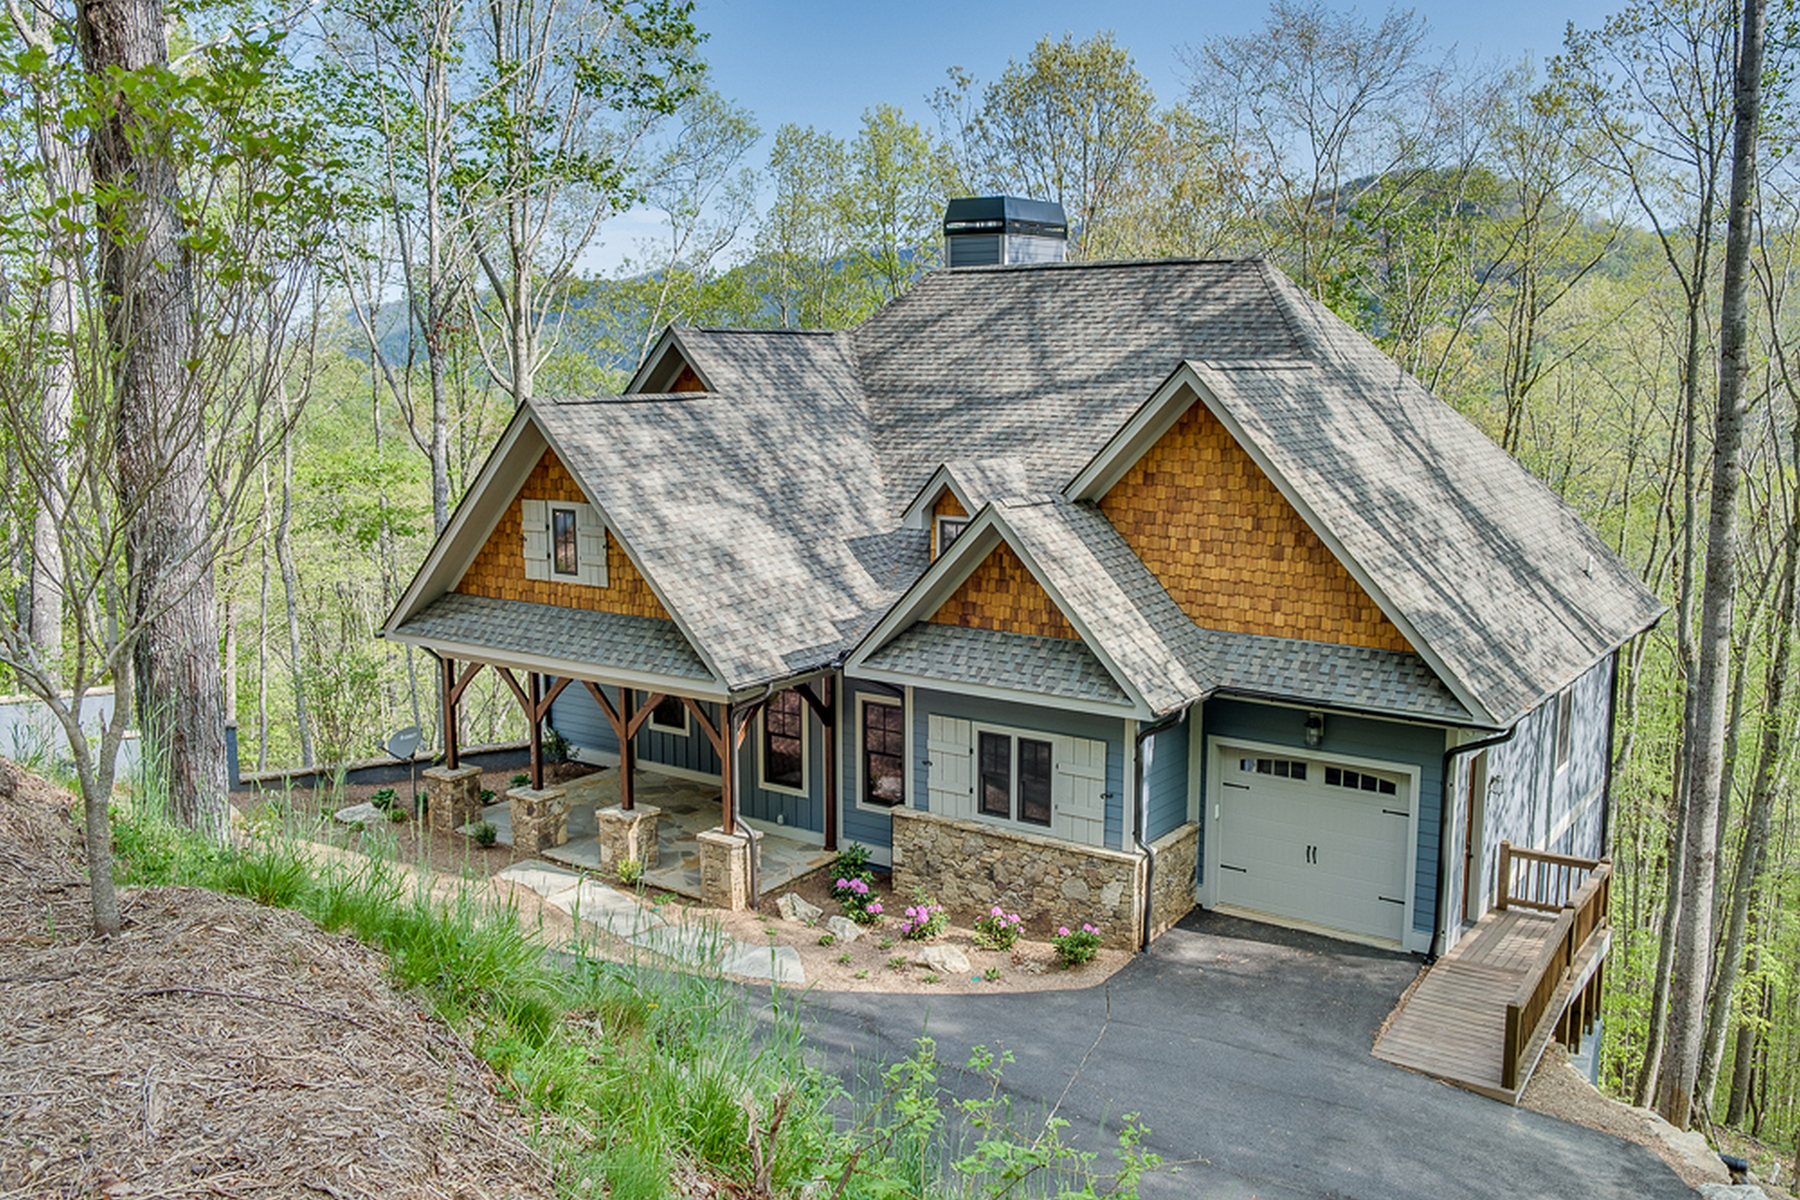 Single Family Homes for Sale at BEAR LAKE RESERVE 1945 Lake Forest Dr Tuckasegee, North Carolina 28783 United States